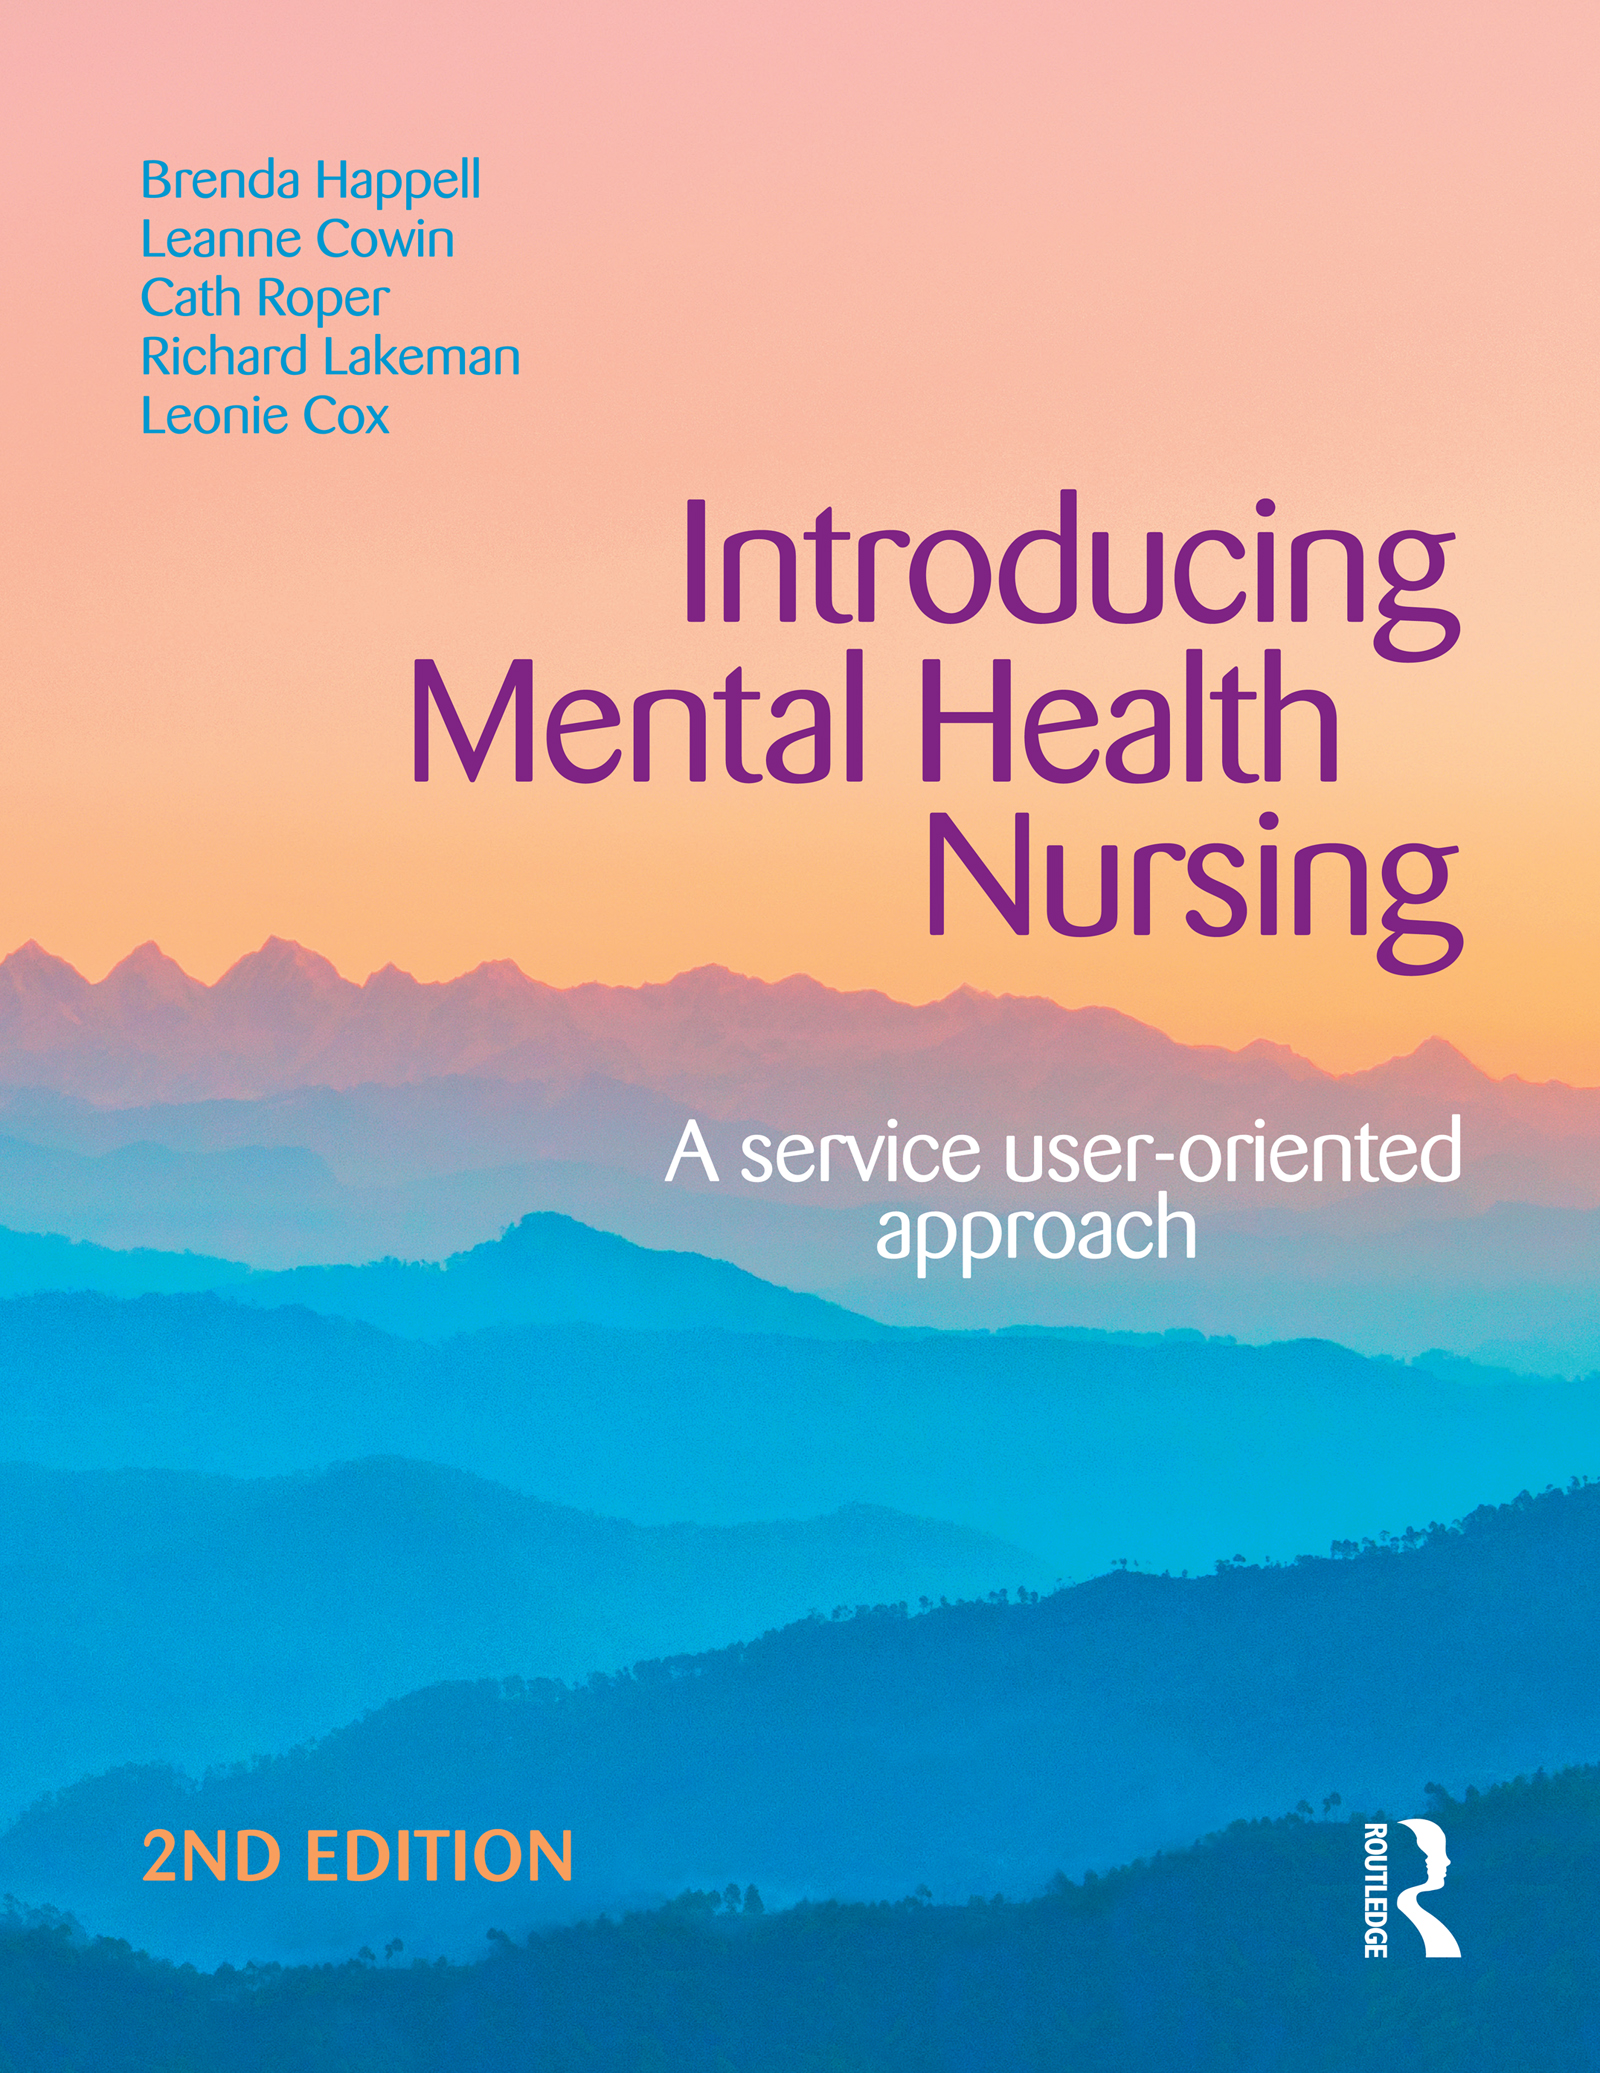 Therapeutic roles in mental health